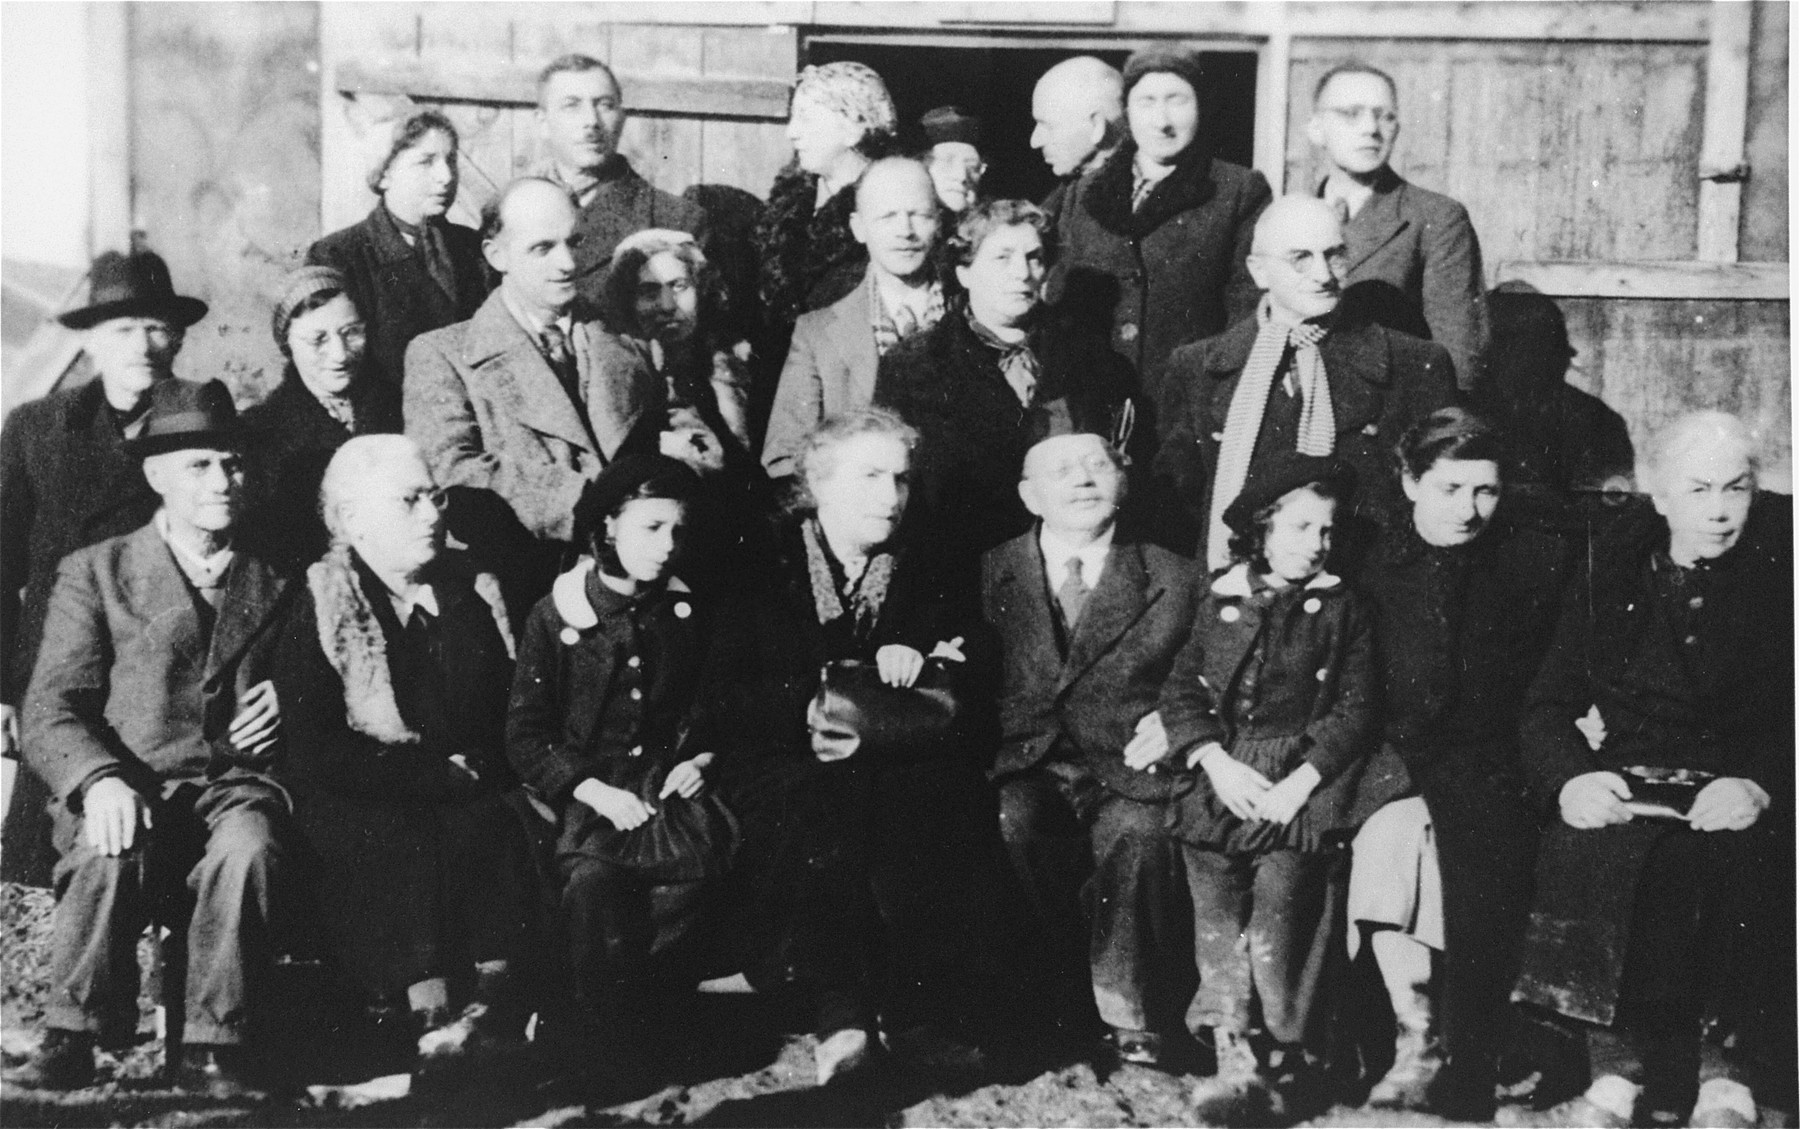 Group portrait of Jewish inmates in the Gurs internment camp taken on the occasion of the golden wedding anniverary of Julius and Emma Wachenheimer.